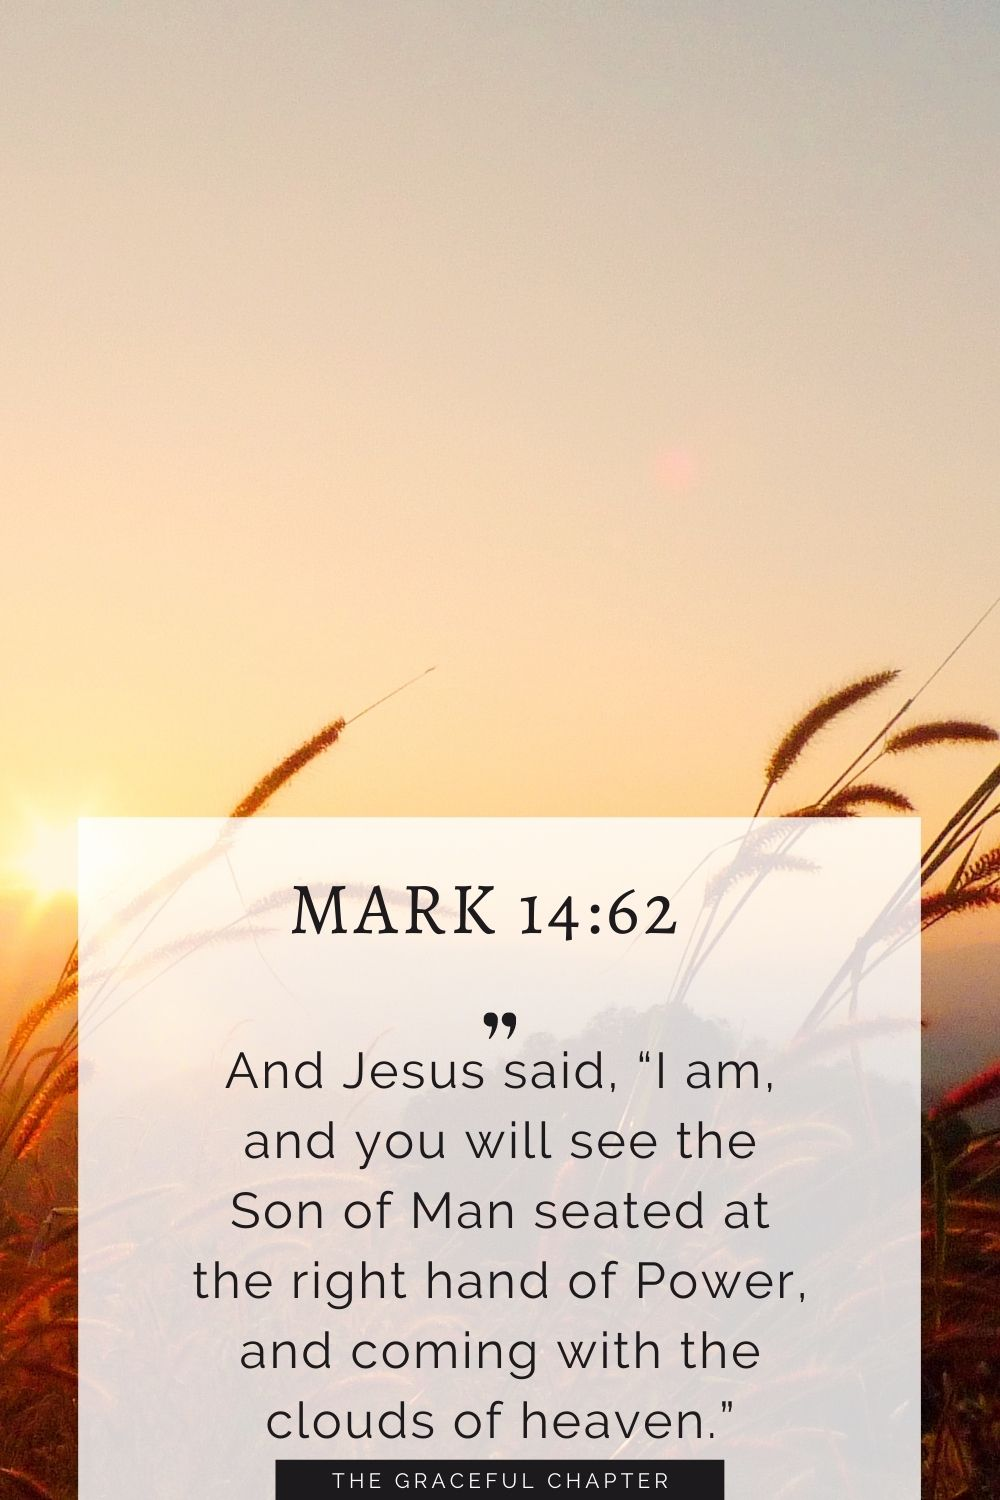 """And Jesus said, """"I am, and you will see the Son of Man seated at the right hand of Power, and coming with the clouds of heaven."""" Mark 14:62"""